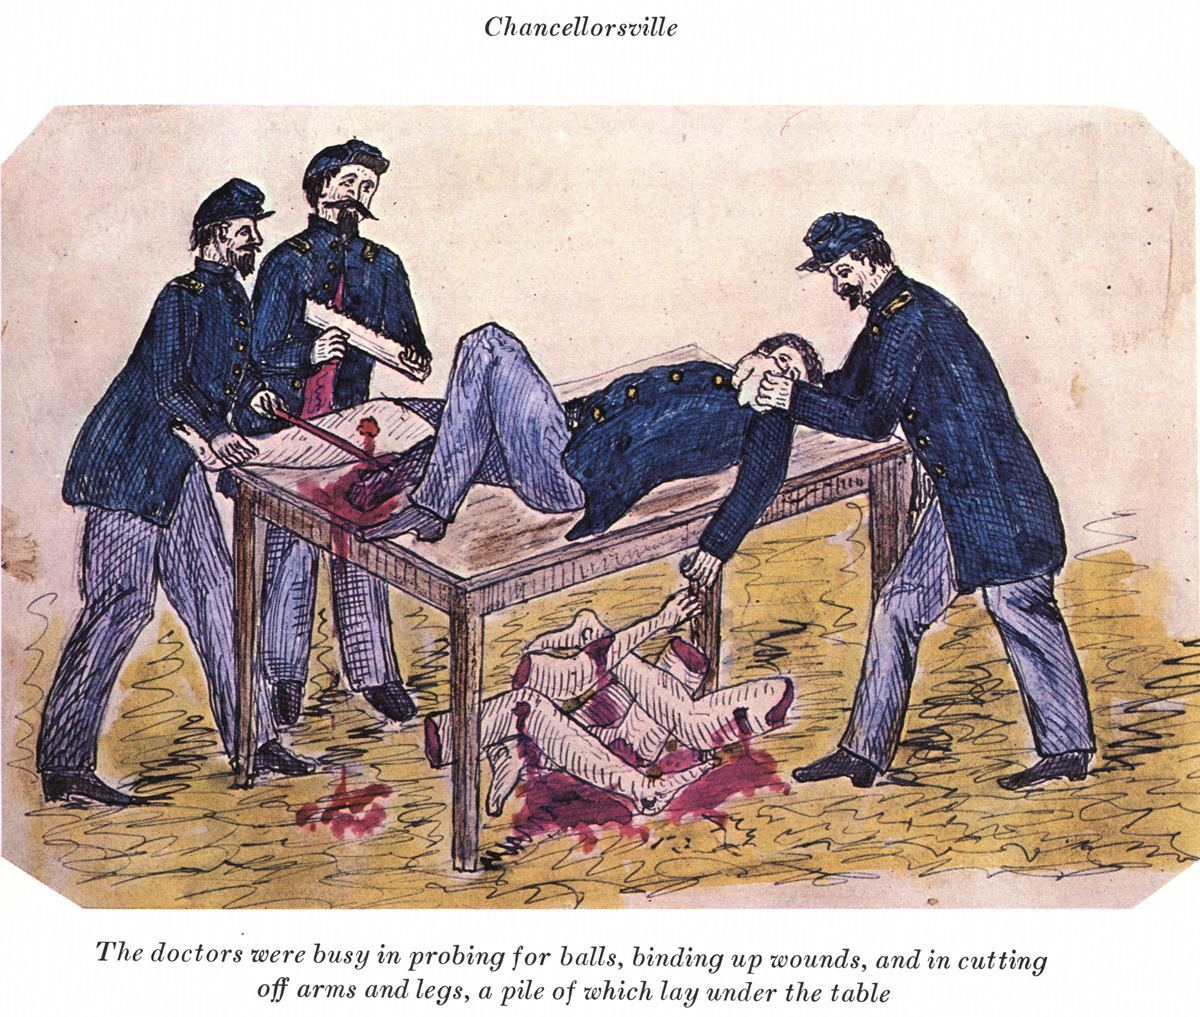 """The doctors were busy in probing for balls, binding up wounds, and in cutting off arms and legs, a pile of which lay under the table"", drawings from the diary of Alfred Bellard, 1860s Courtesy Alec Thomas Archives"